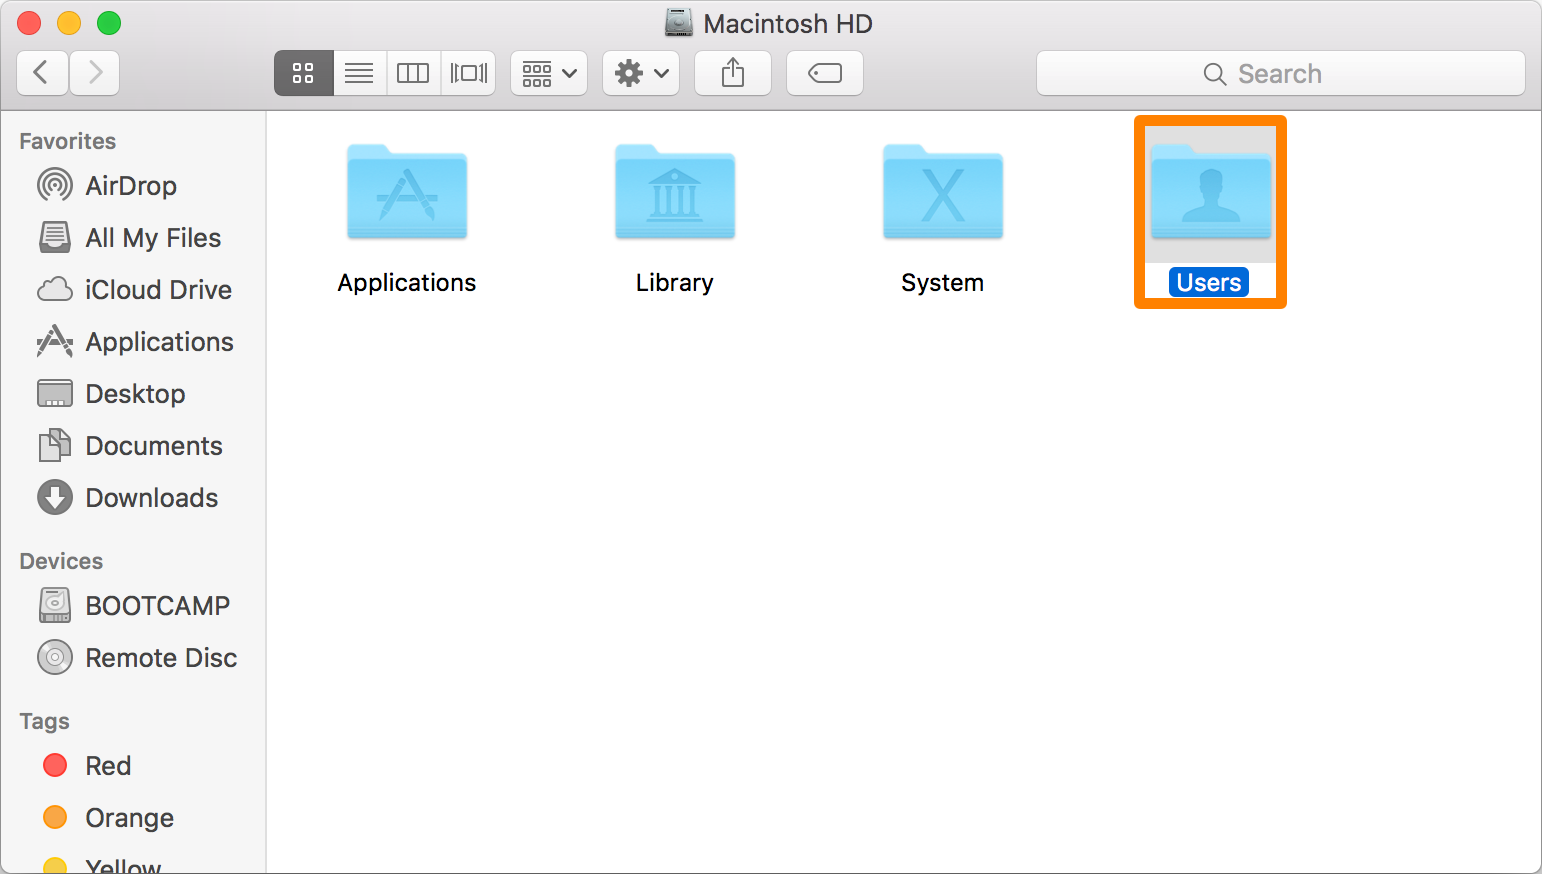 Macintosh HD Users Folder